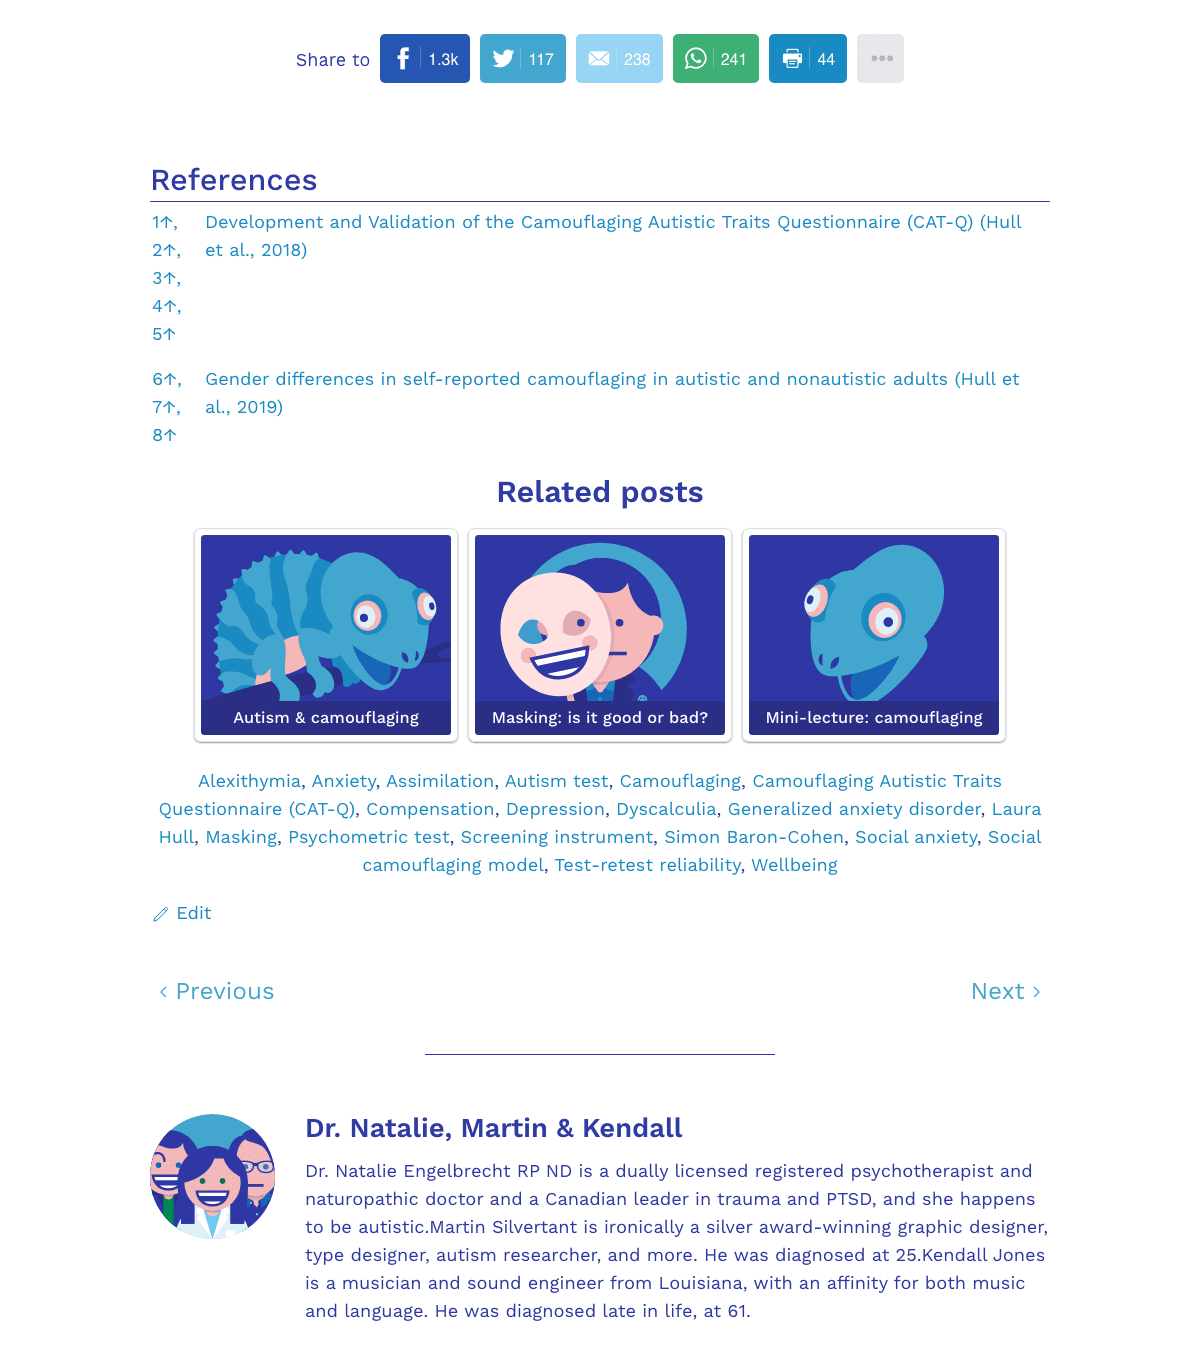 A screenshot of the old blog post layout.